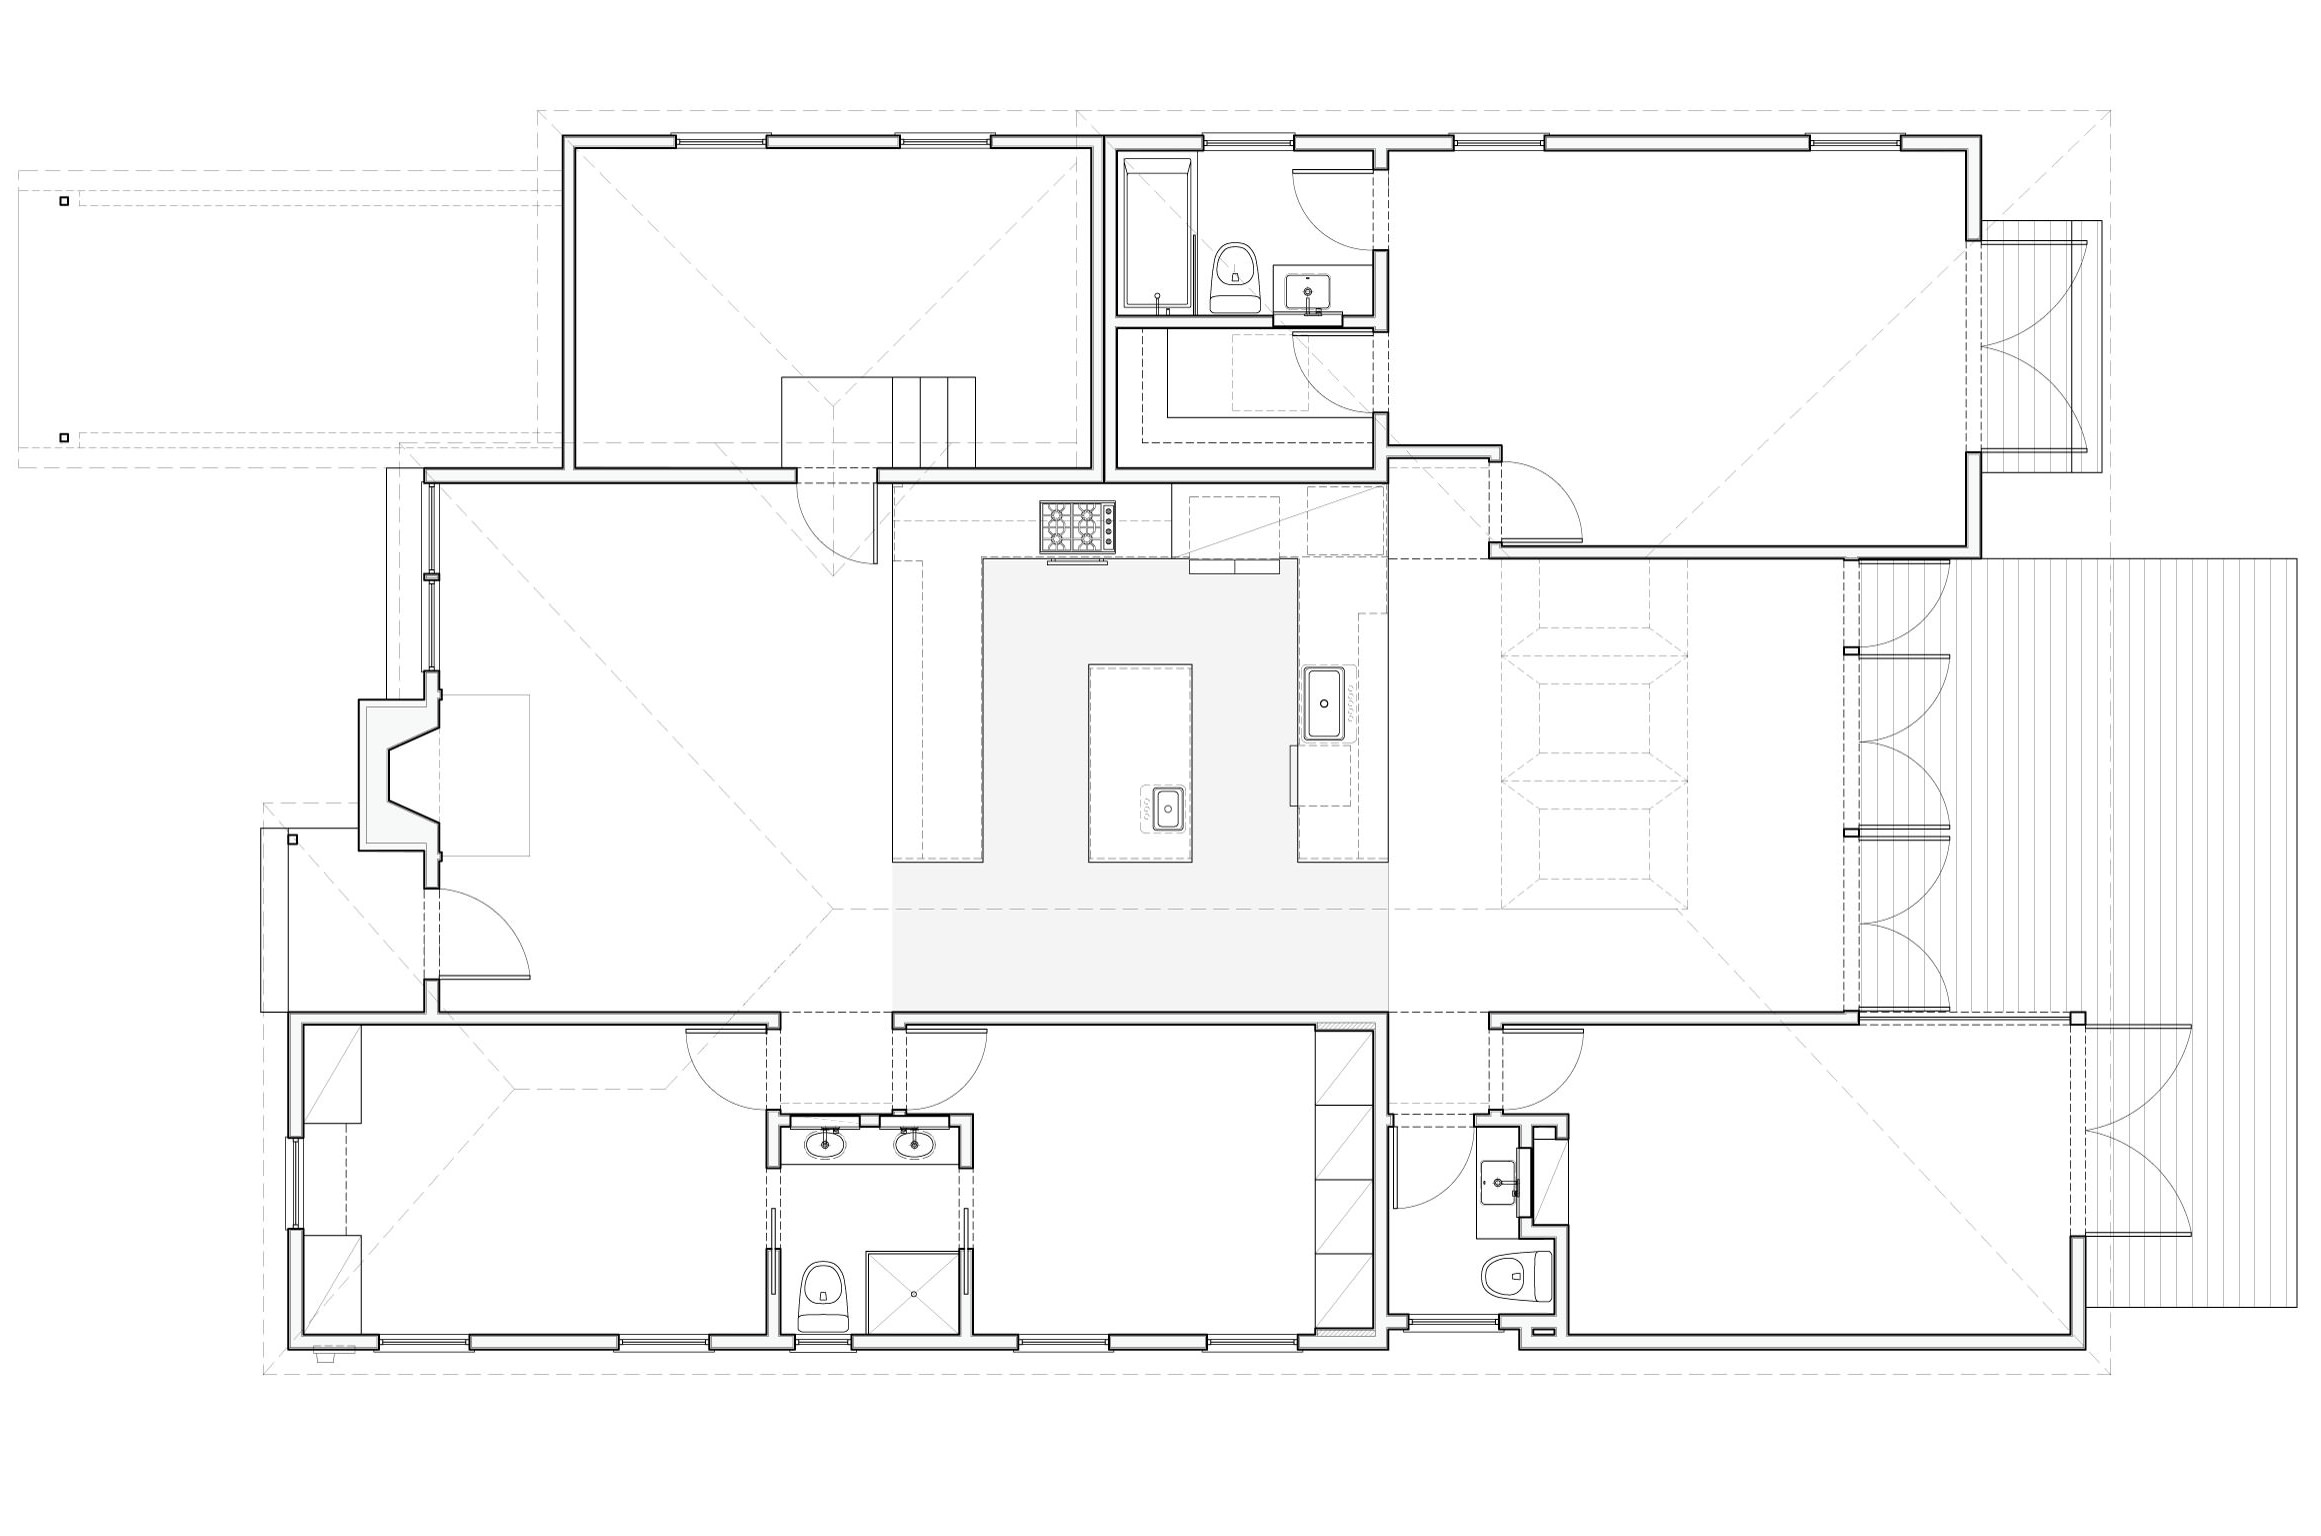 The new 2,040 square foot plan.